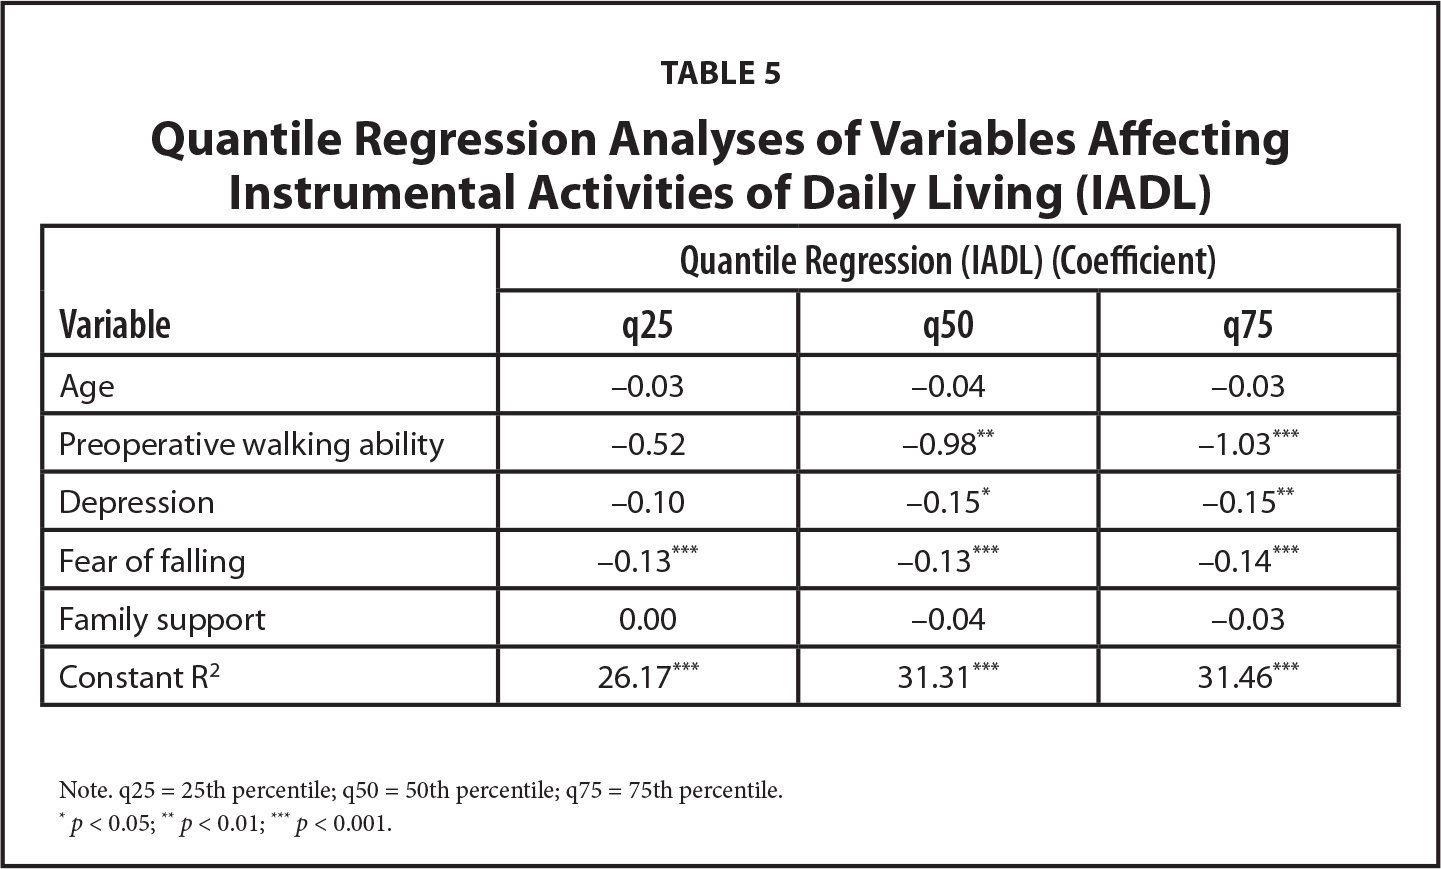 Quantile Regression Analyses of Variables Affecting Instrumental Activities of Daily Living (IADL)